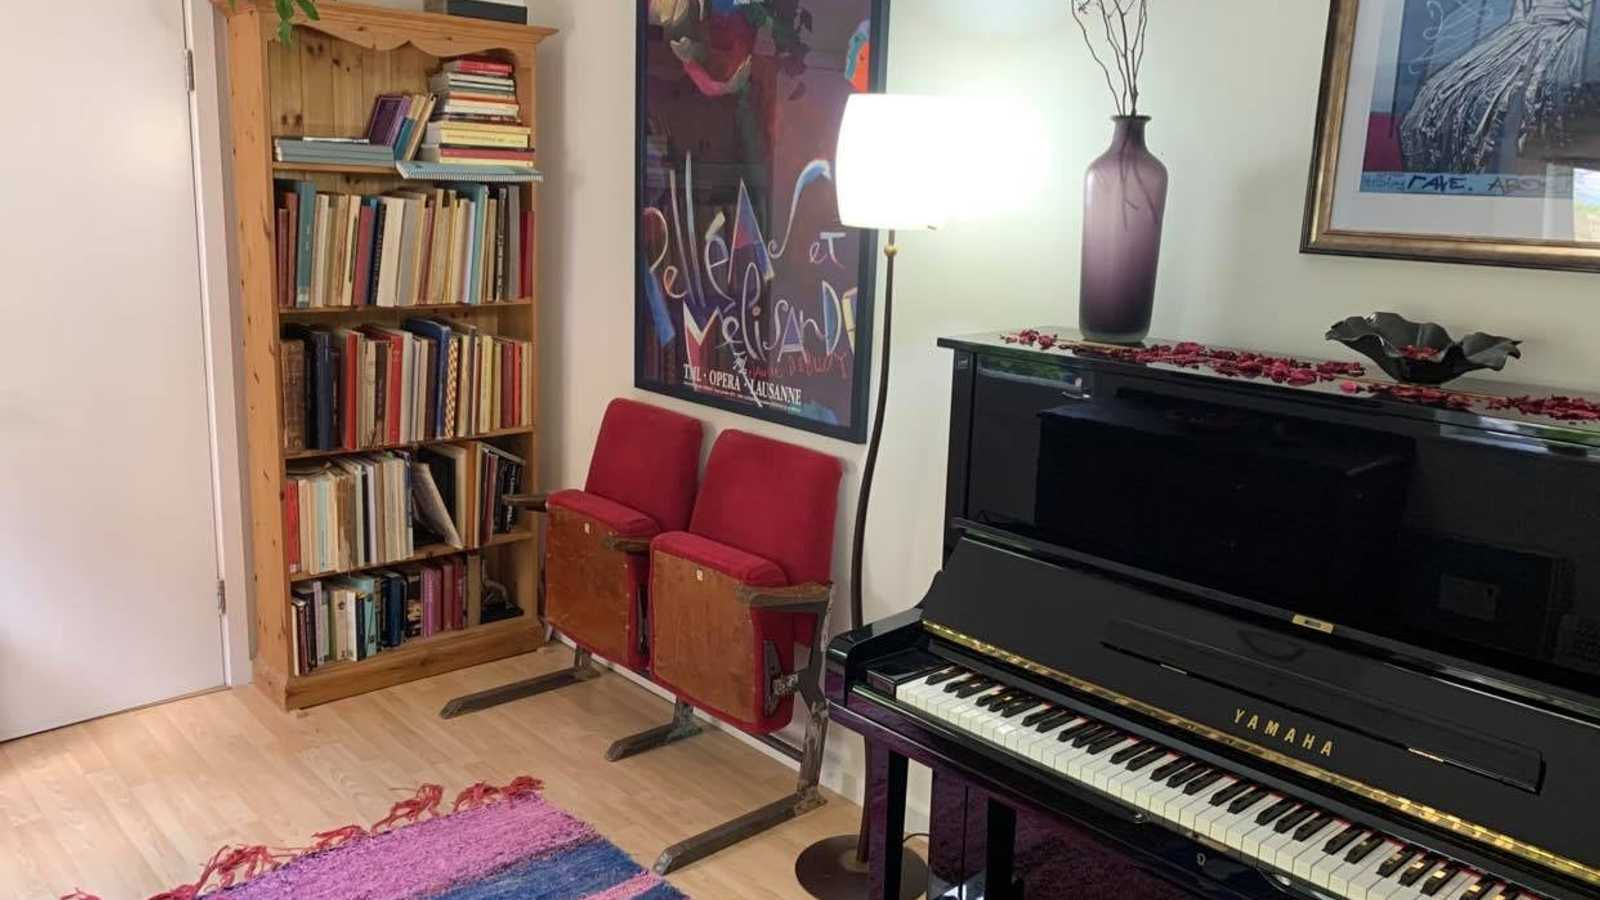 Yamaha Upright and Score Library in Colourful Garden Studio